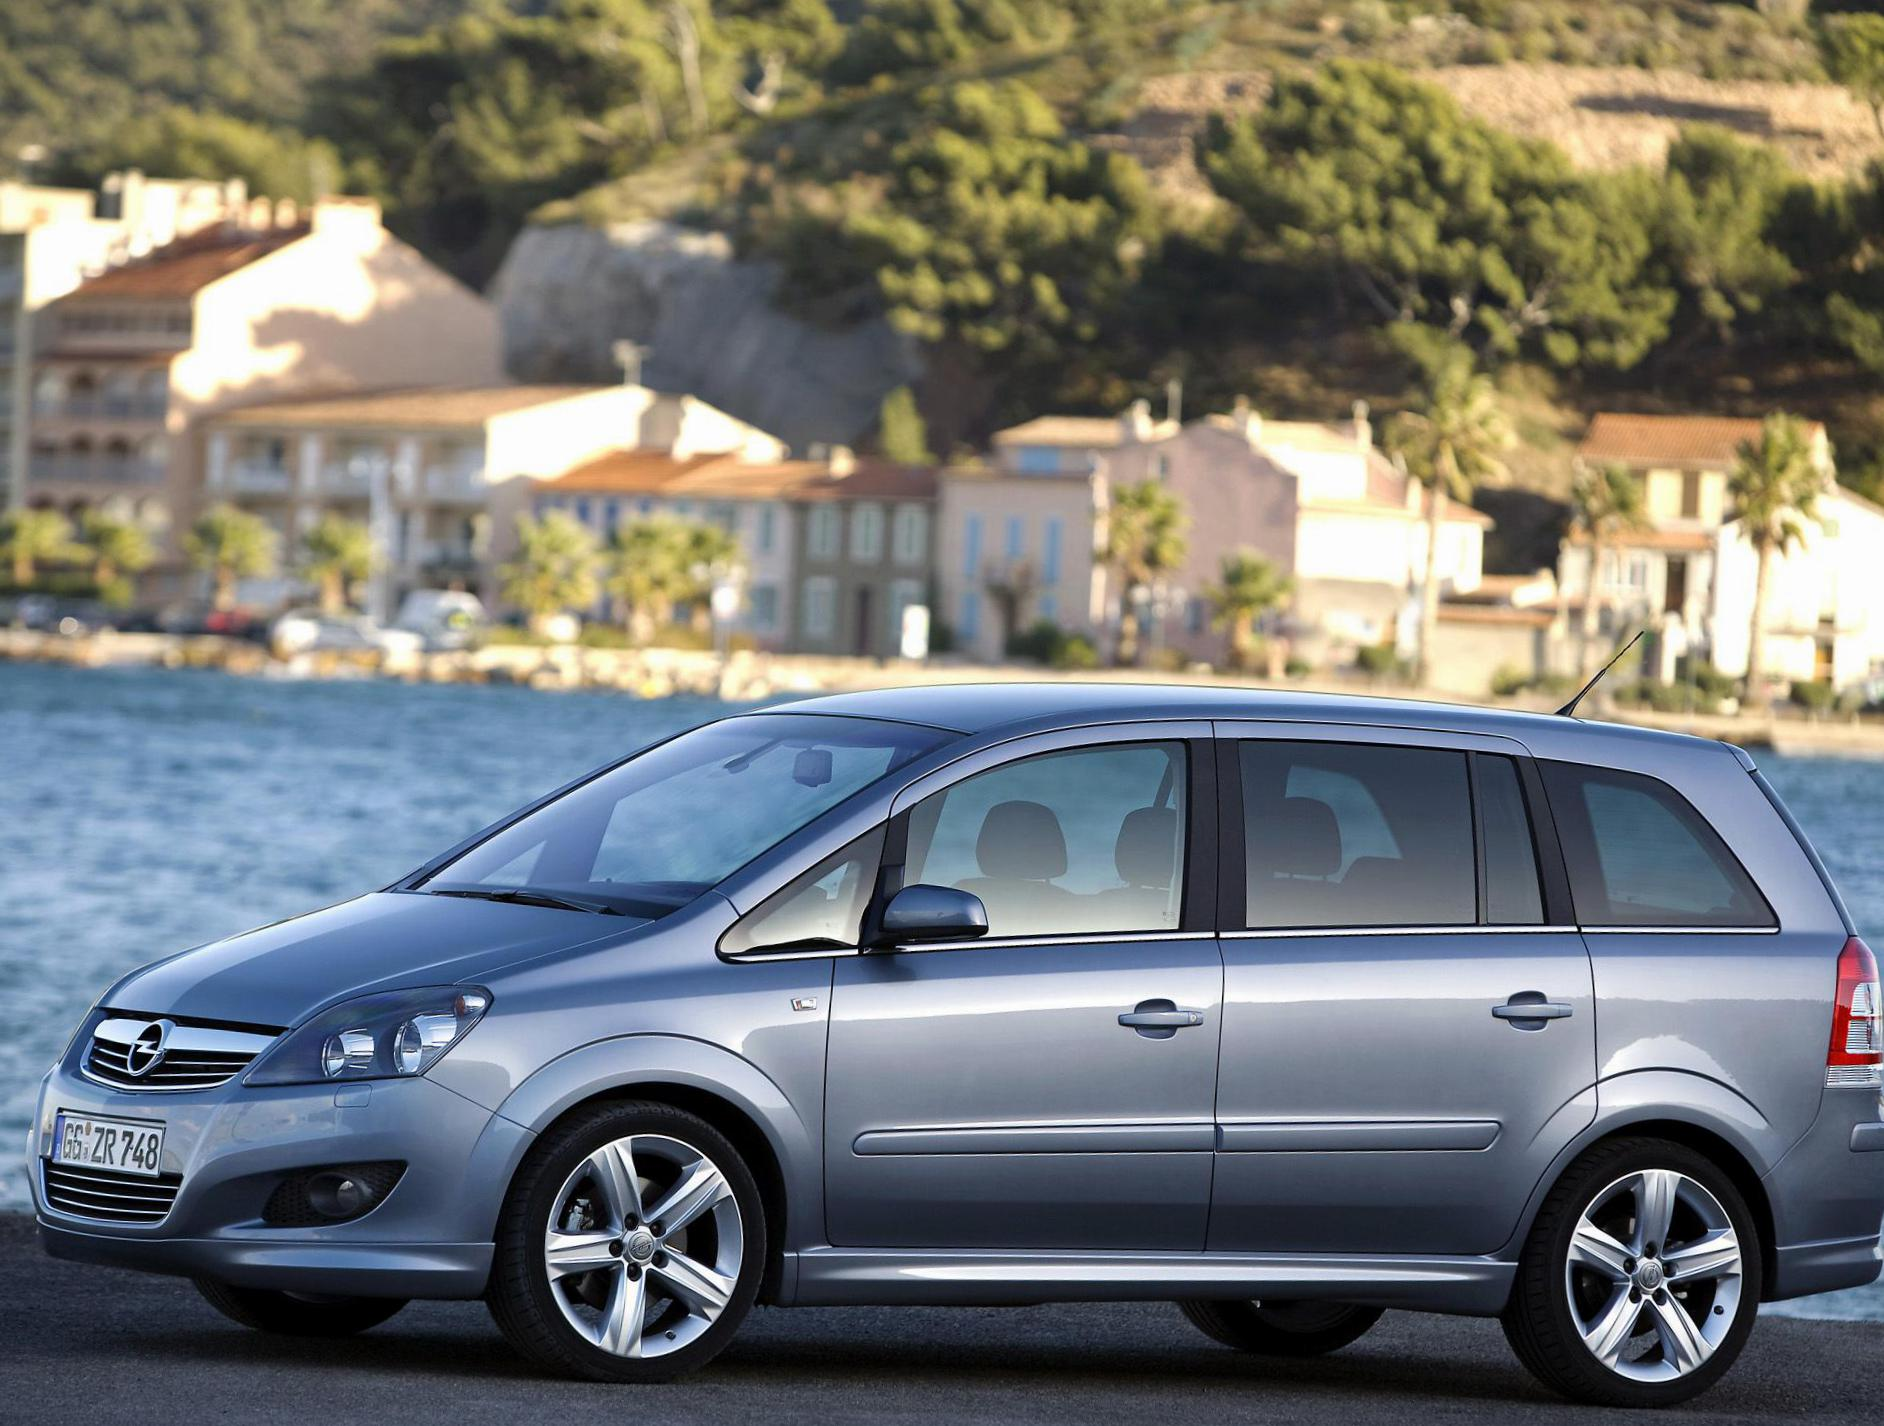 opel zafira b photos and specs photo opel zafira b. Black Bedroom Furniture Sets. Home Design Ideas